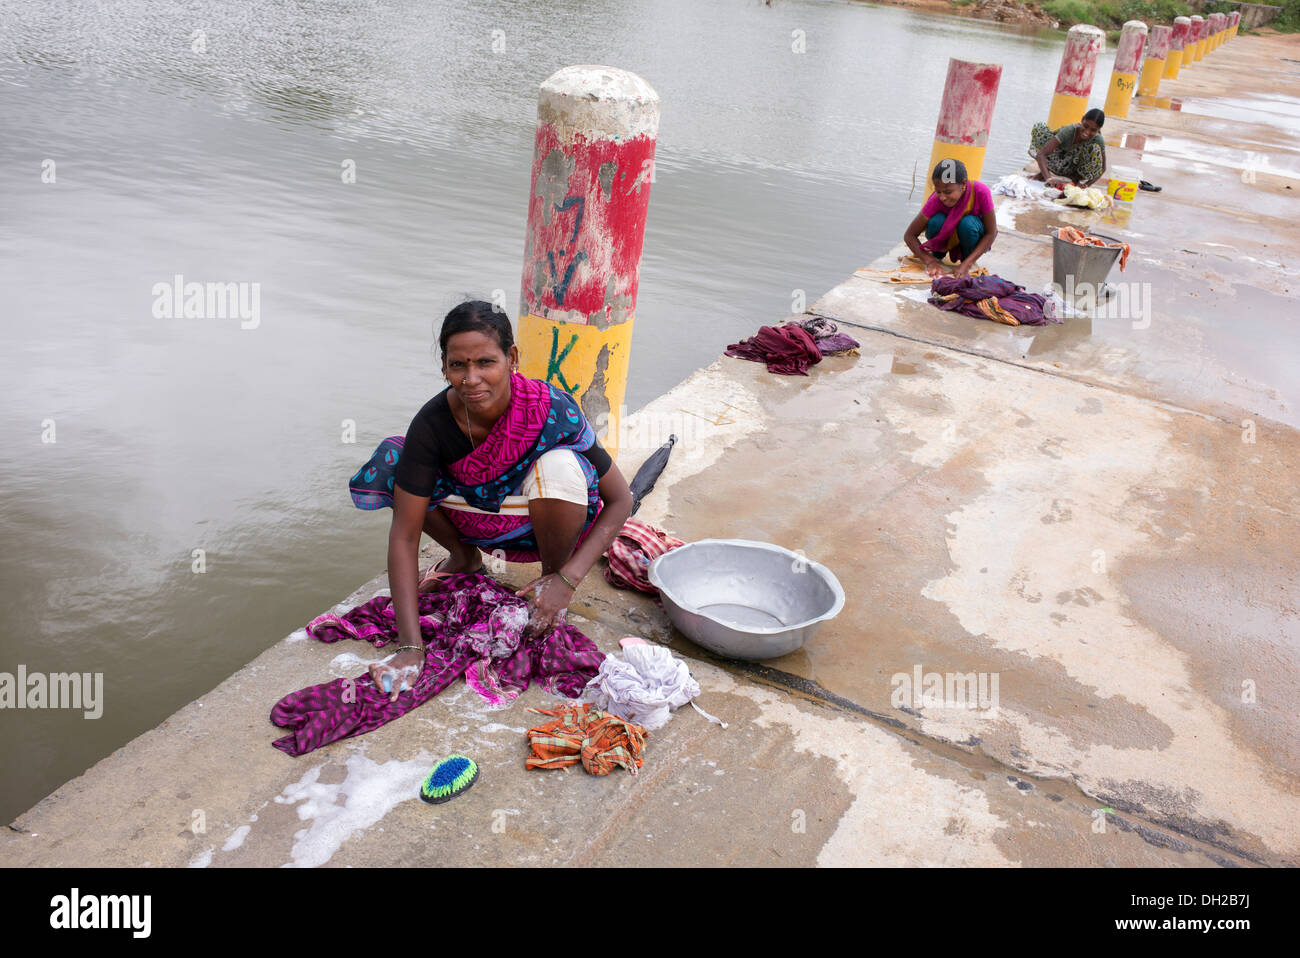 women wash clothes river in stockfotos women wash clothes river in bilder alamy. Black Bedroom Furniture Sets. Home Design Ideas